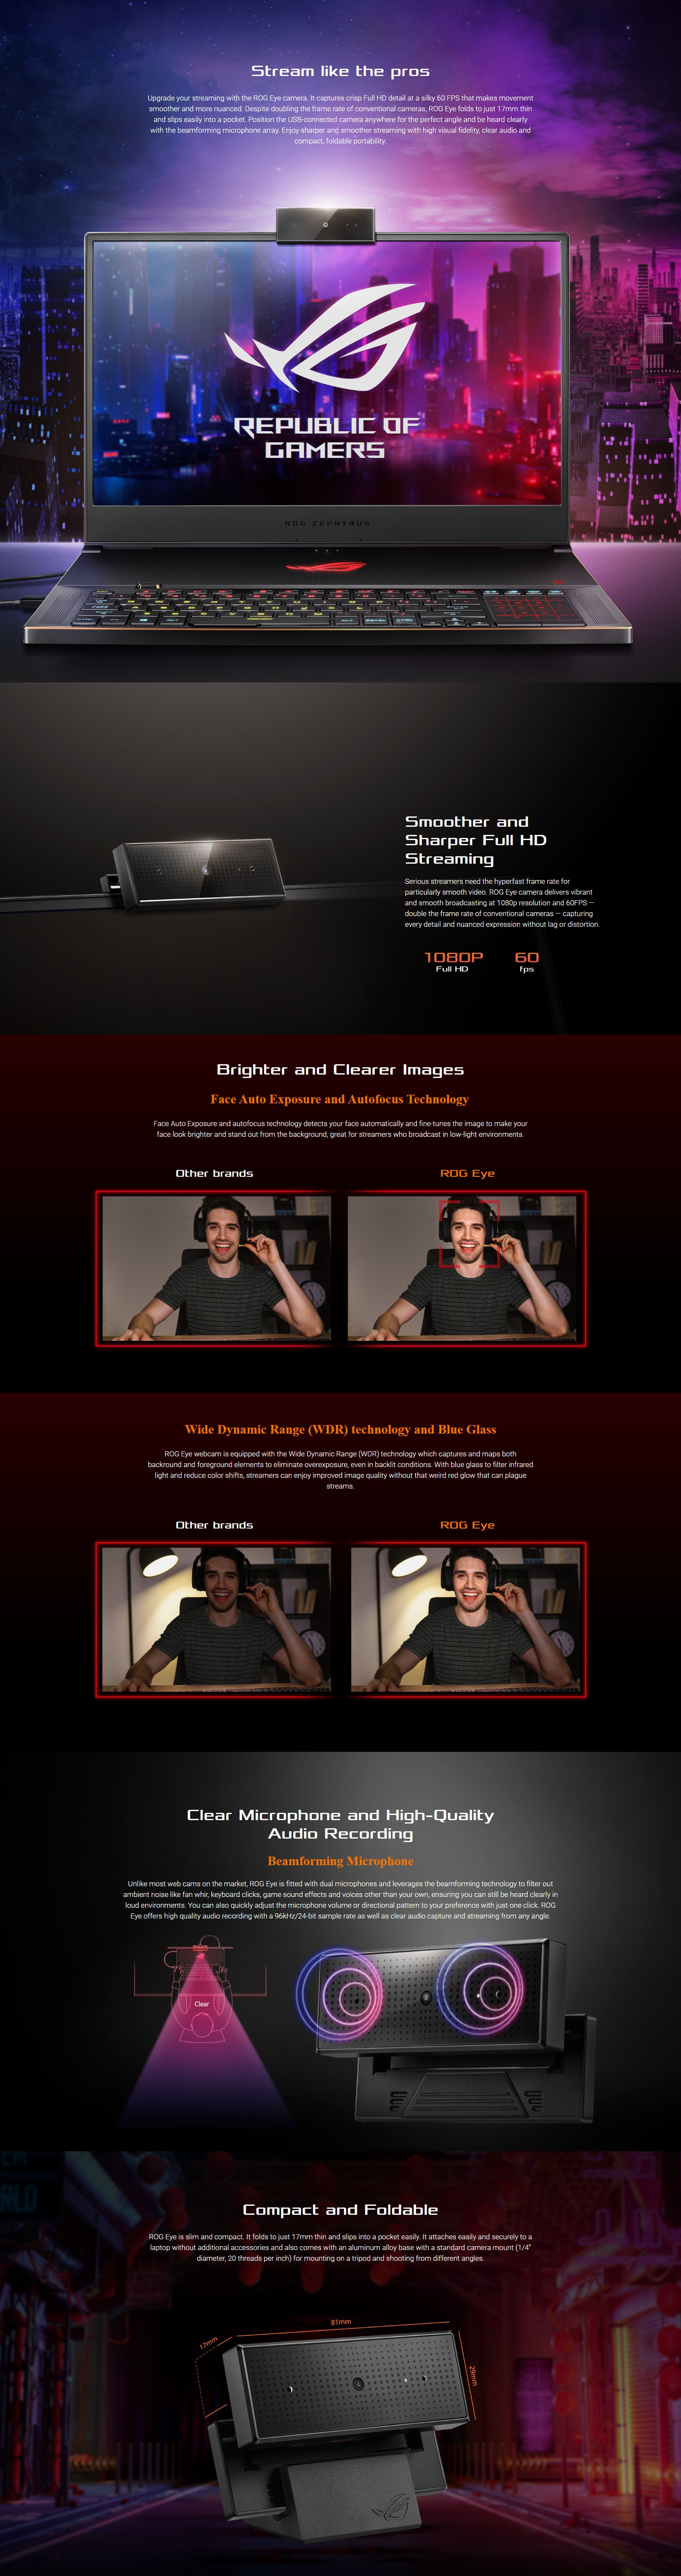 A large marketing image providing additional information about the product ASUS ROG EYE 1080p Streaming Webcam - Additional alt info not provided